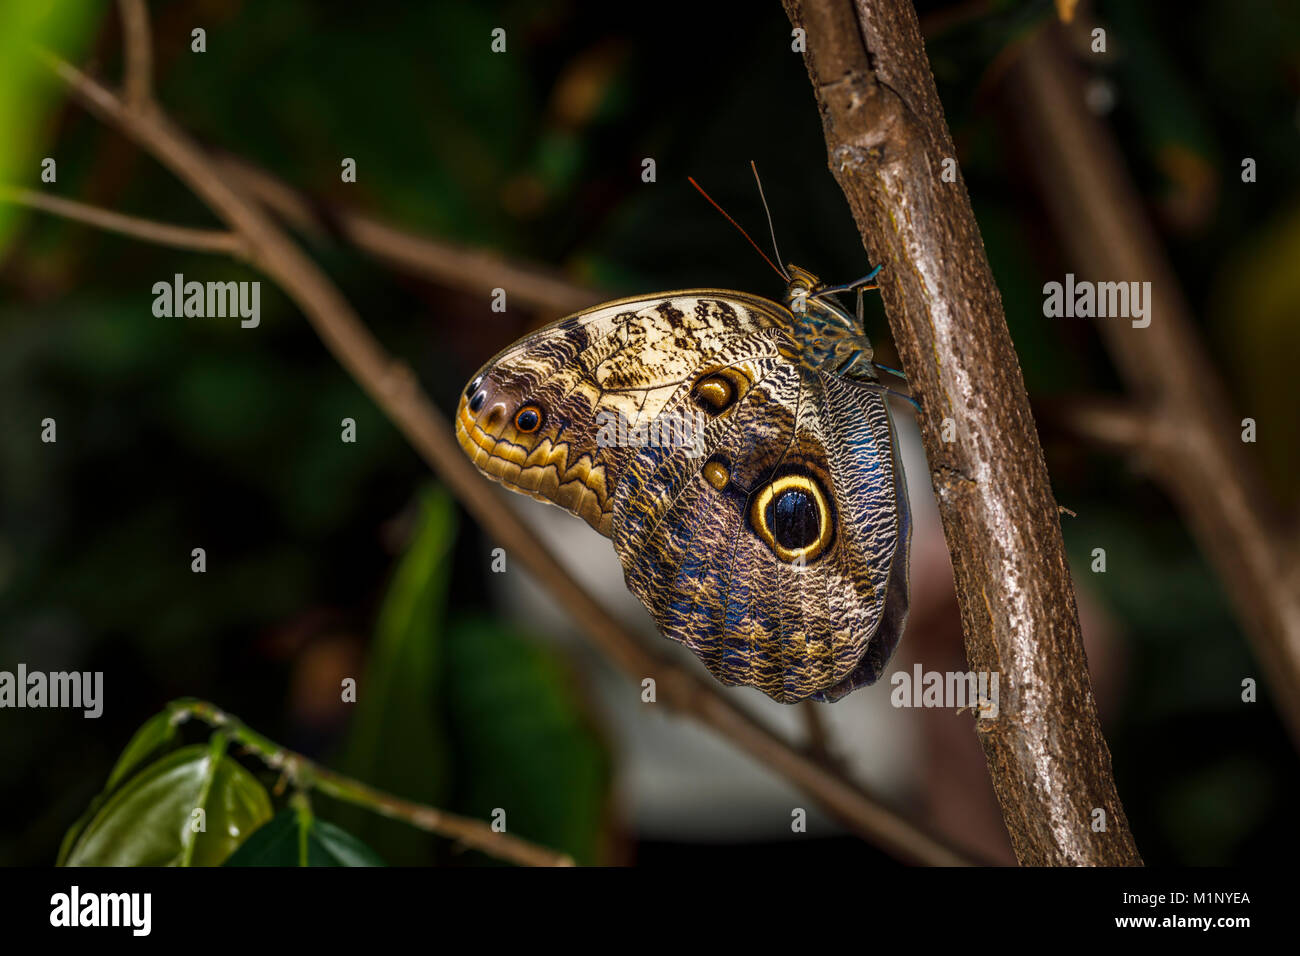 Owl butterfly (Caligo memnon) at rest with wings closed showing fake eye mimicry markings, RHS Wisley annual butterfly - Stock Image